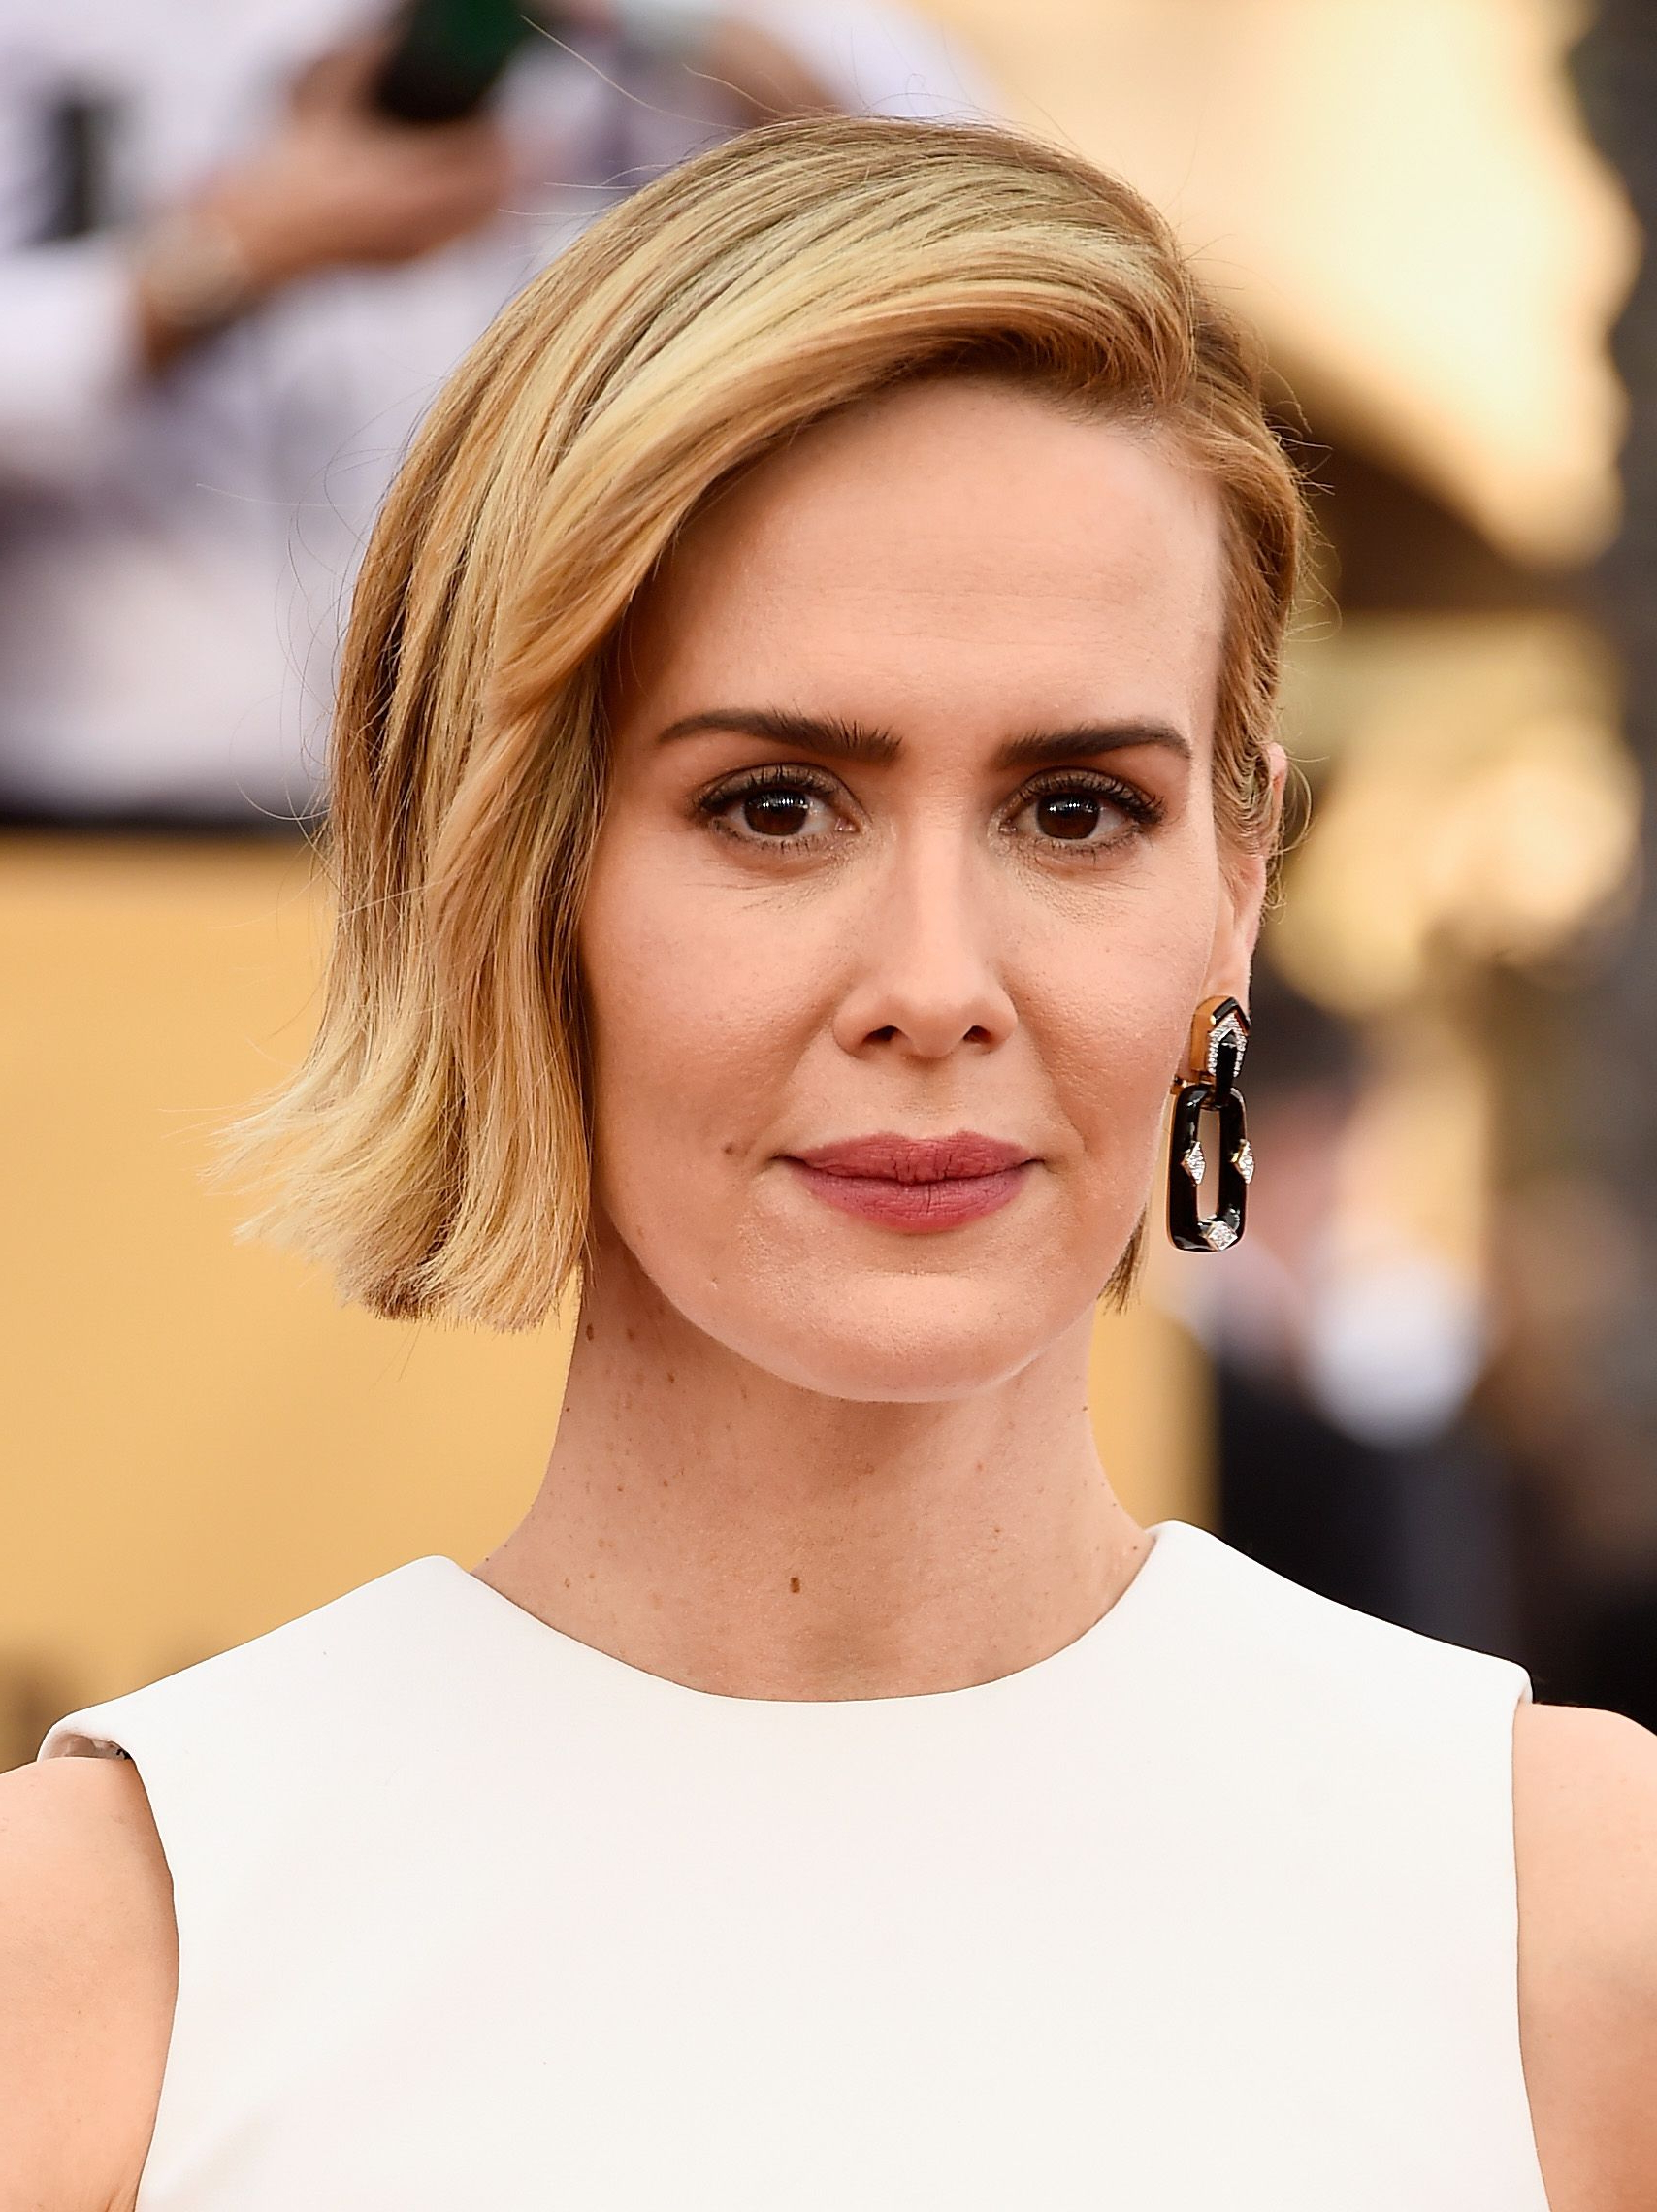 65 Best Short Hairstyles, Haircuts, And Short Hair Ideas For 2018 Pertaining To Cute Celebrity Short Haircuts (Gallery 3 of 25)